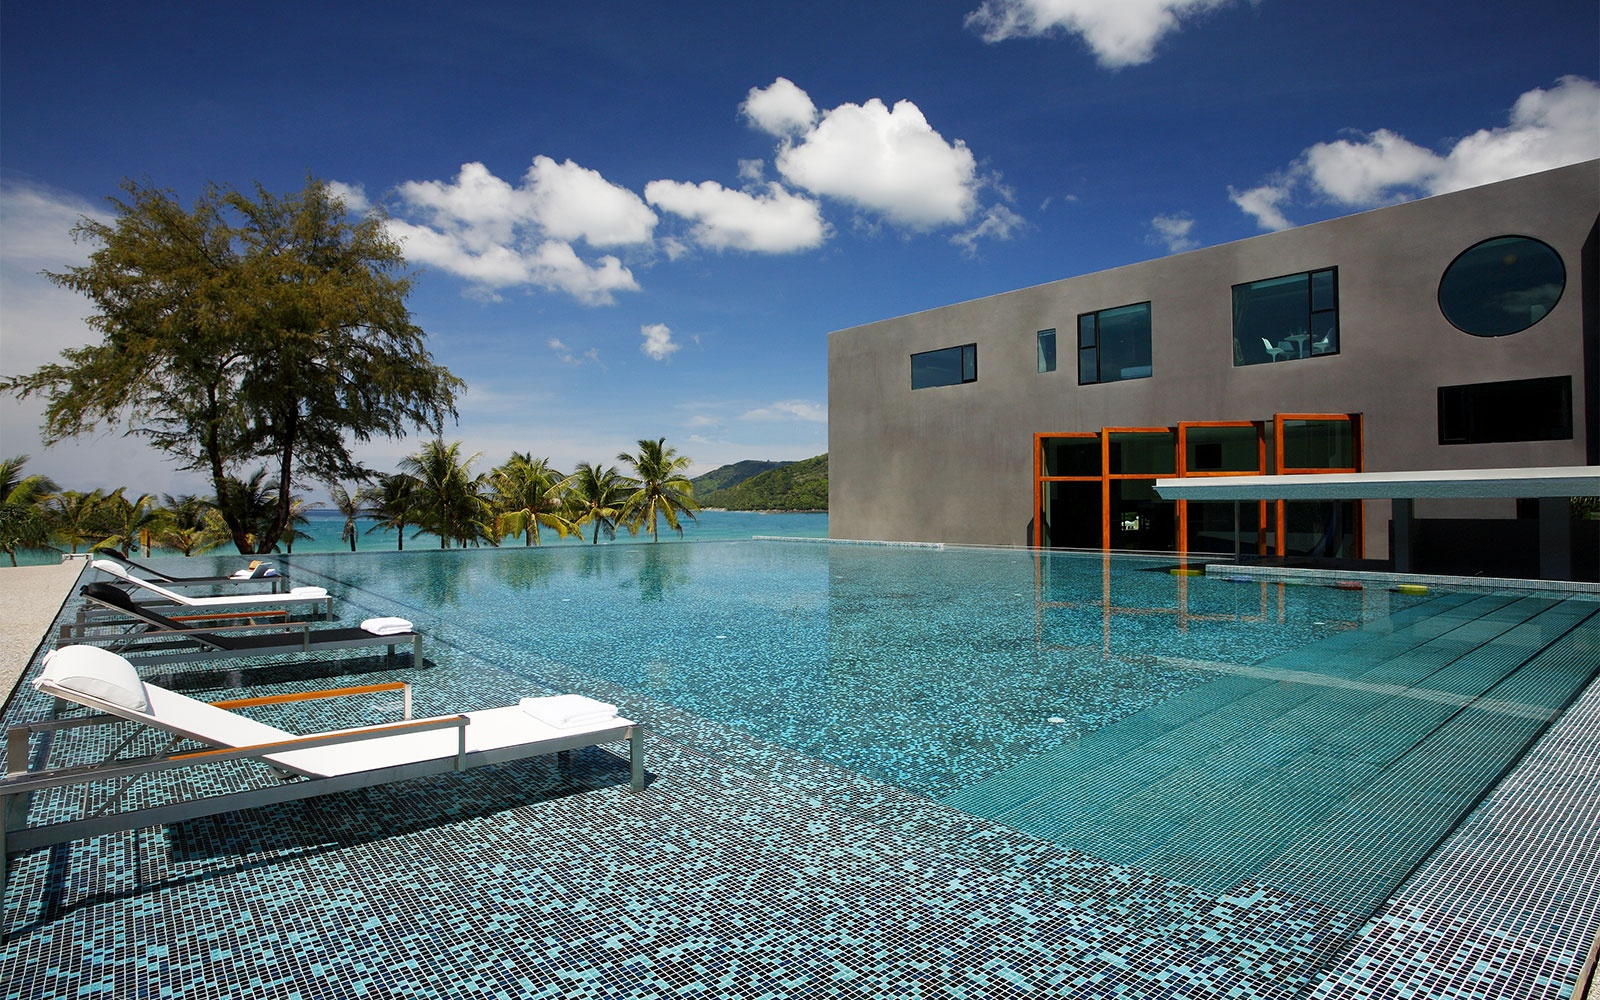 B-Lay Tong Phuket, MGallery Collection, Phuket, Thailand